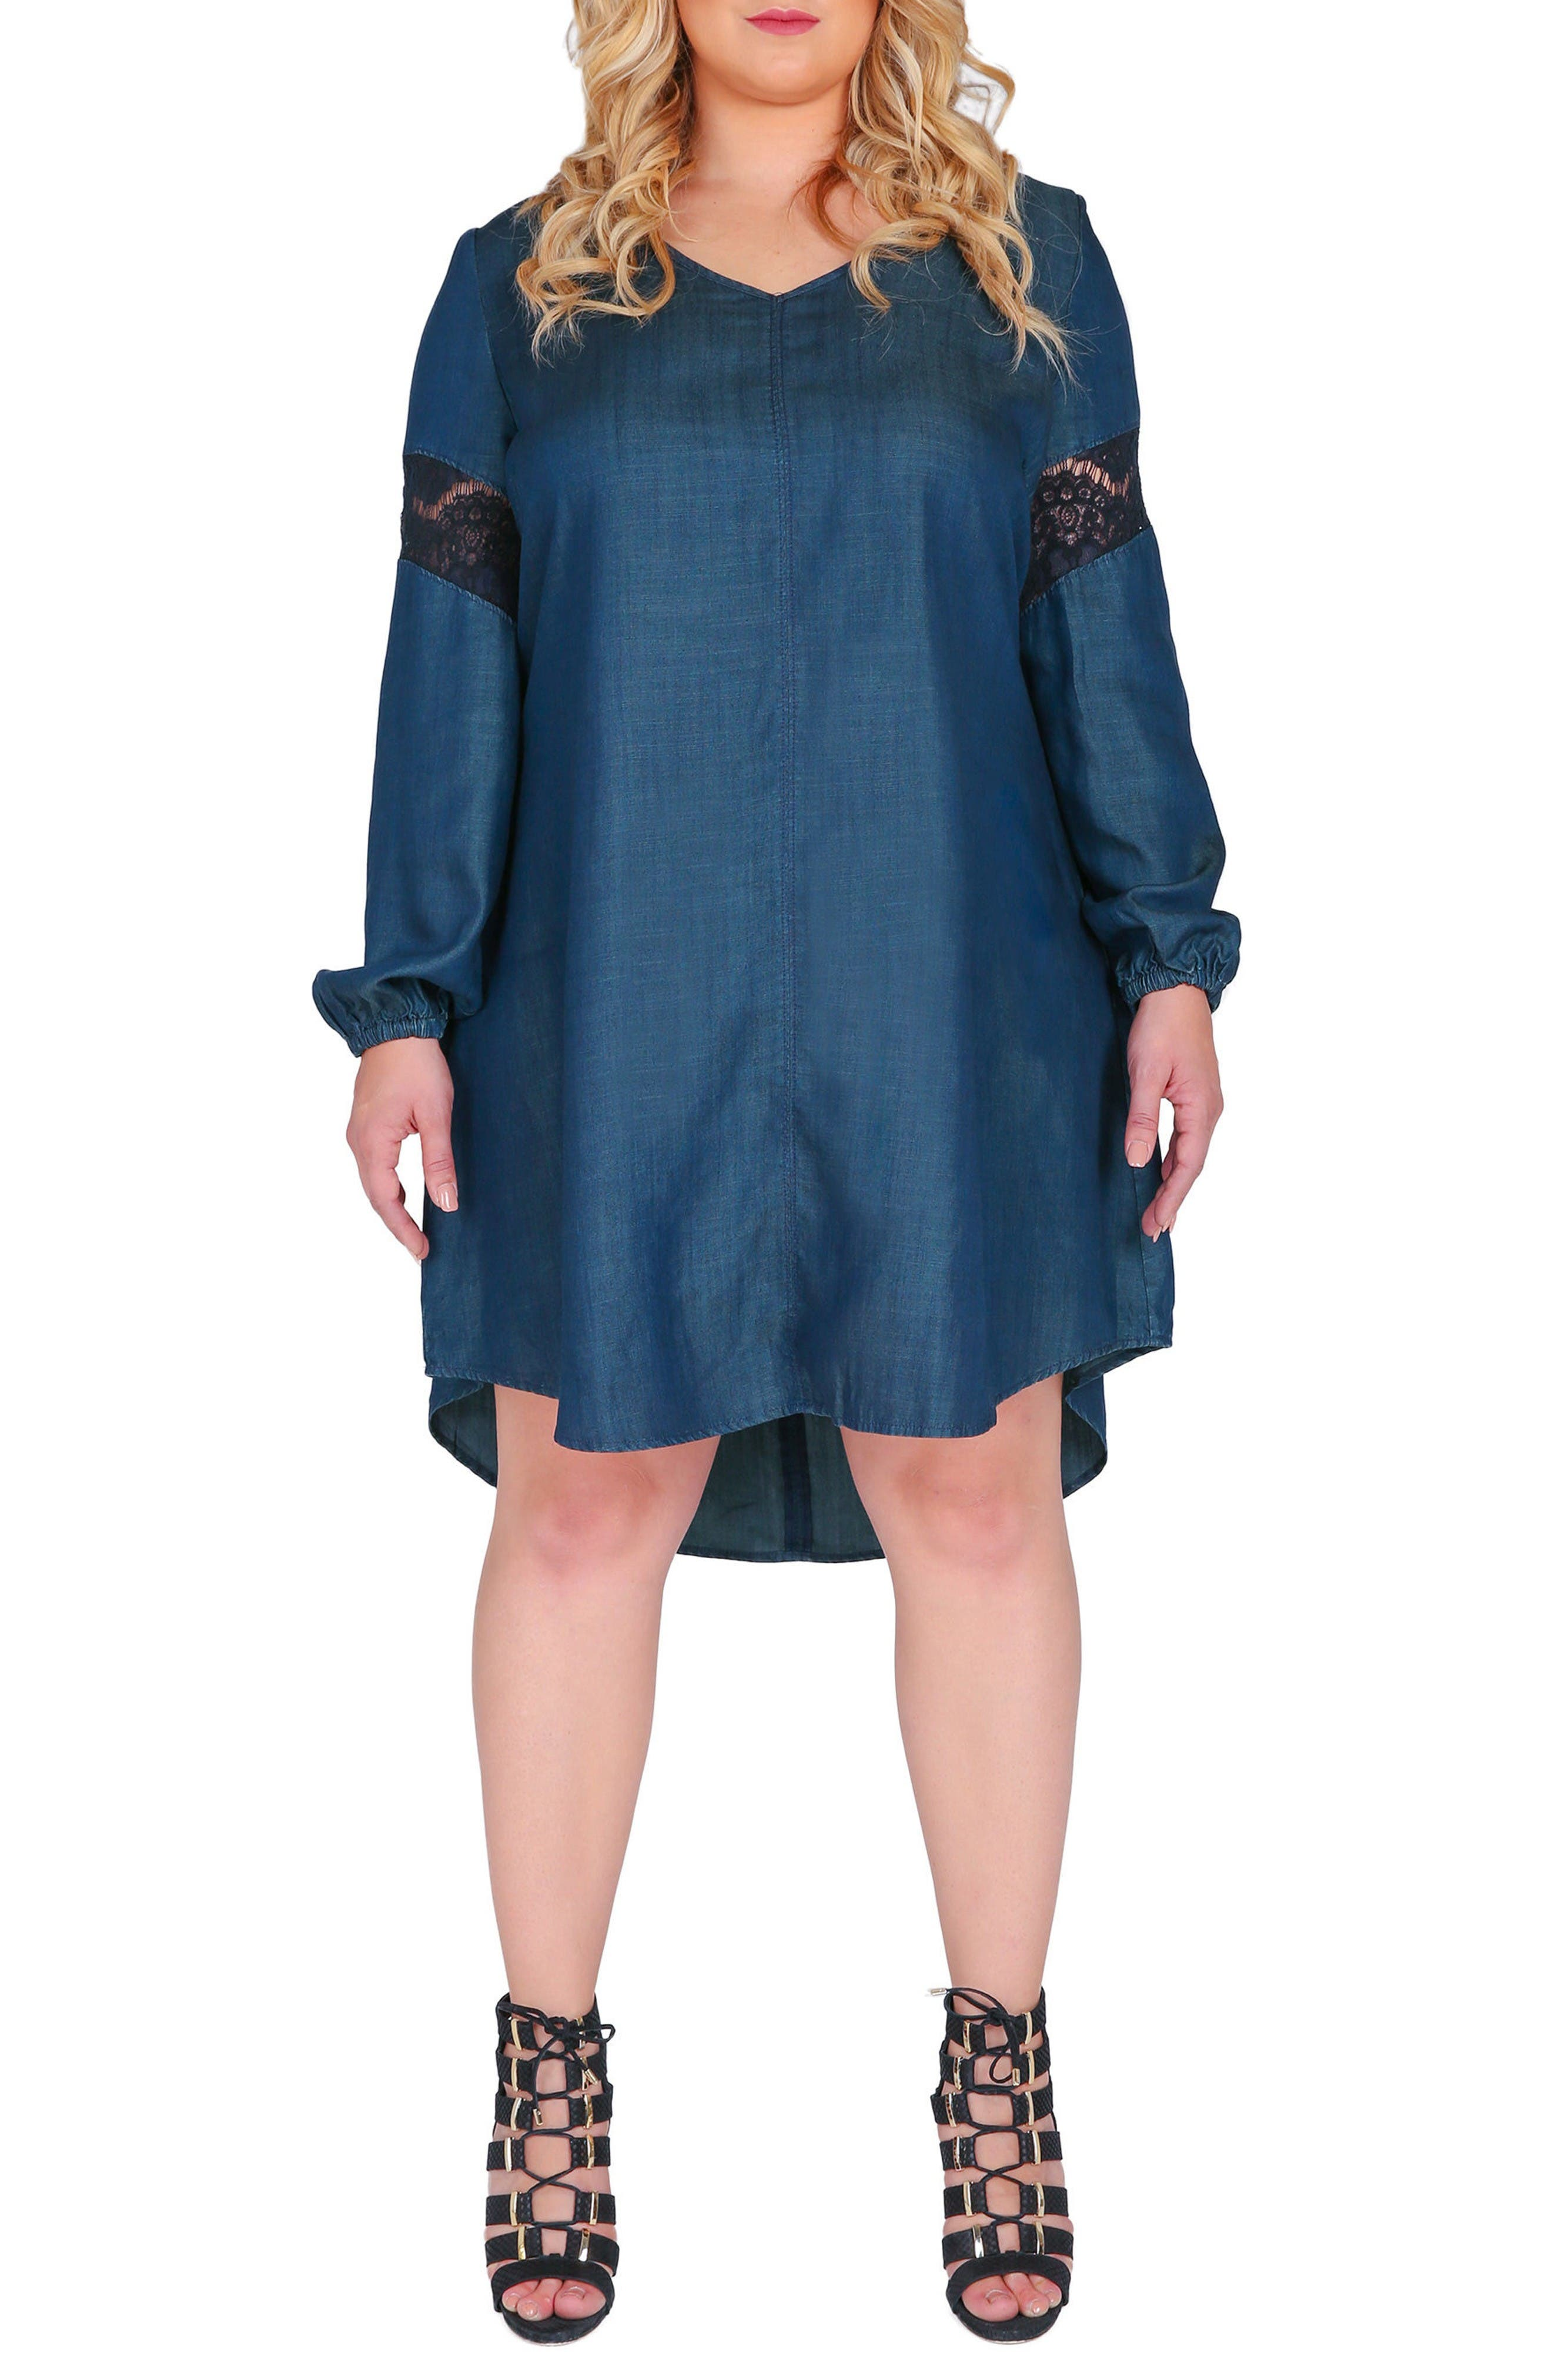 Alternate Image 1 Selected - Standards & Practices Shelby Shift Dress (Plus Size)